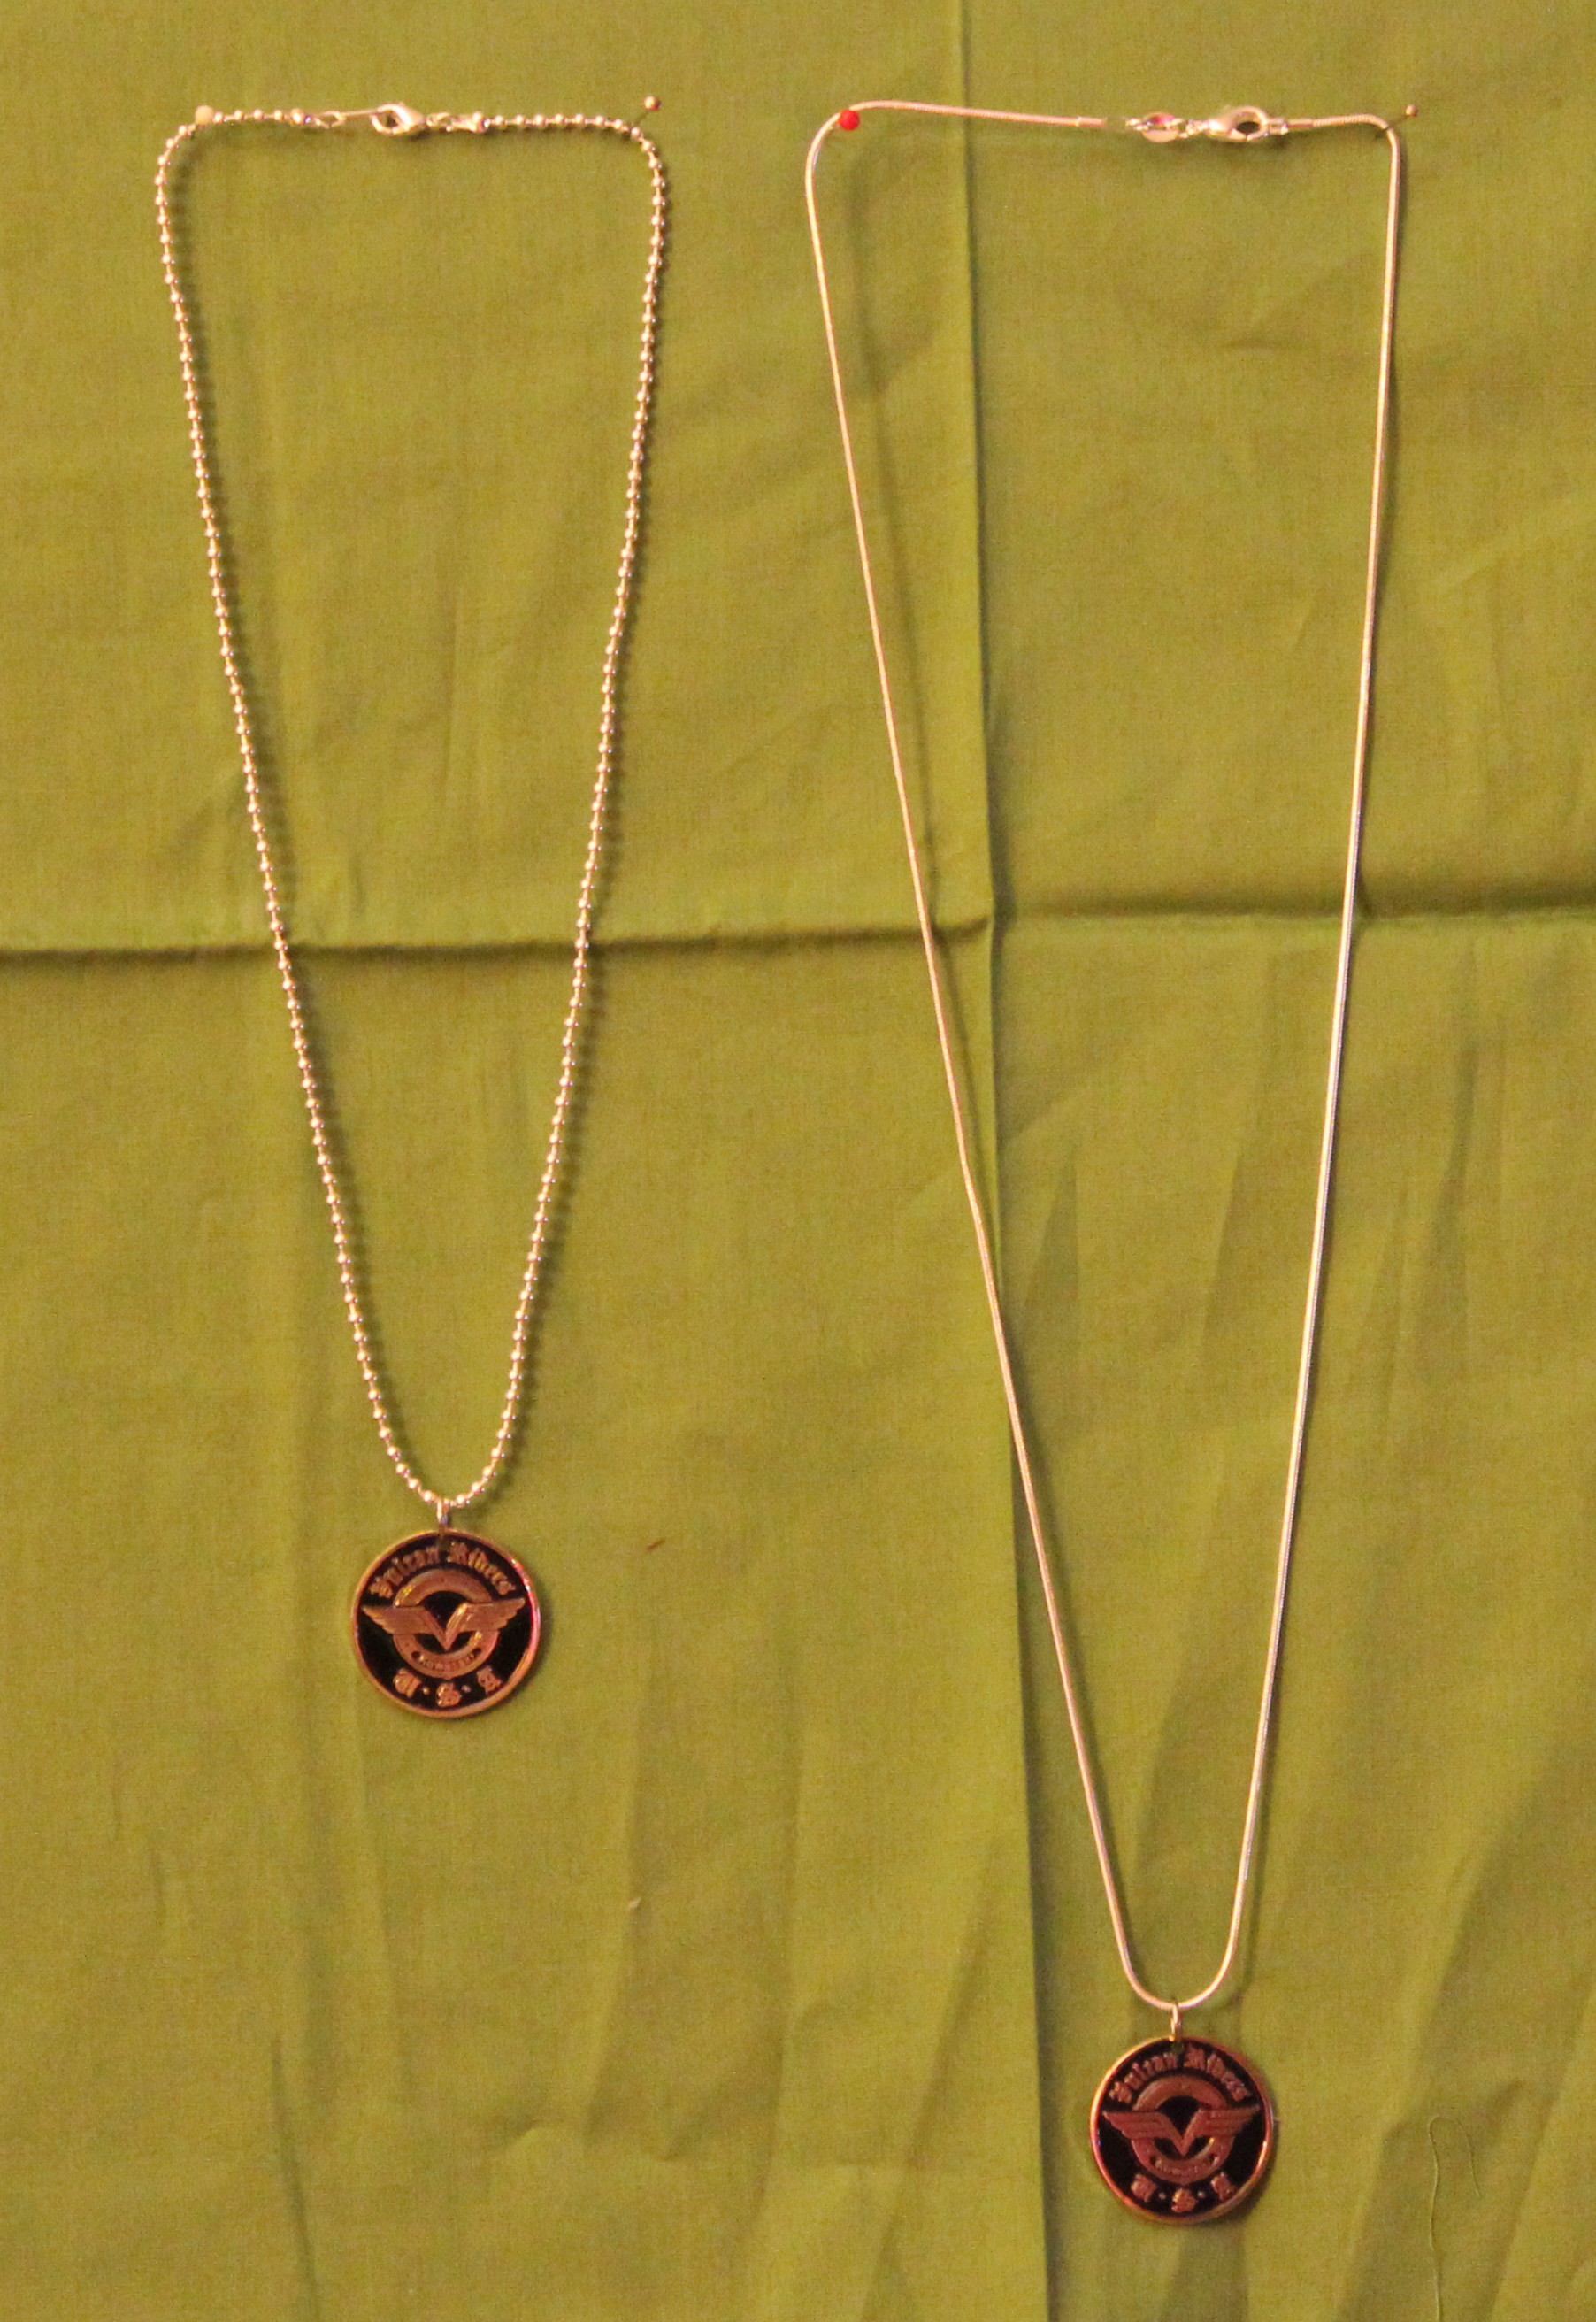 VRA Necklaces